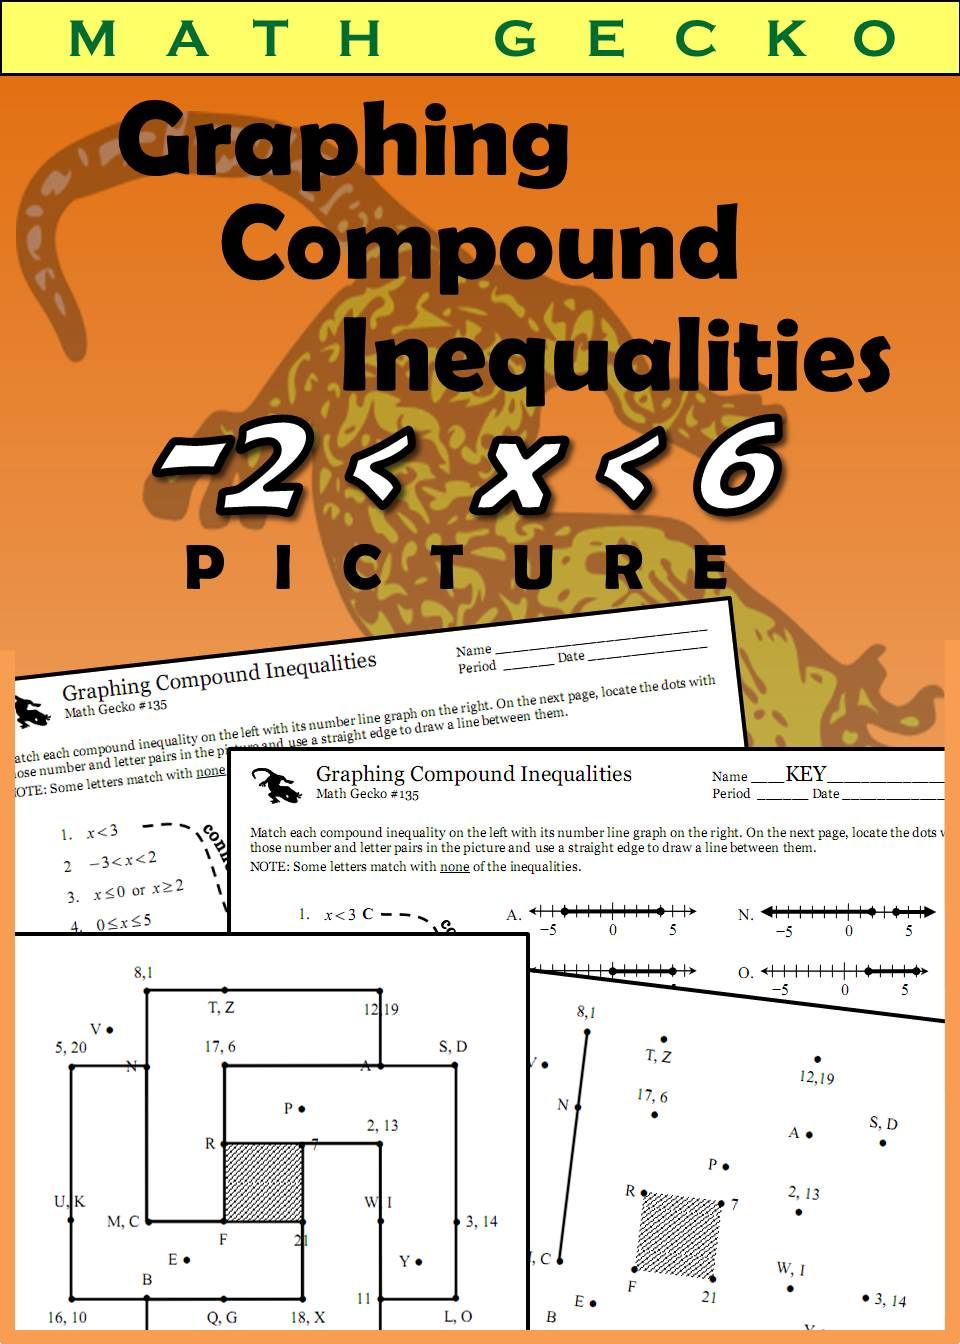 Students Match Compound Inequalities With Number Line Graphs To Draw A Clever Geometric Design Inequalities U Compound Inequalities Inequality Math Resources [ 1344 x 960 Pixel ]